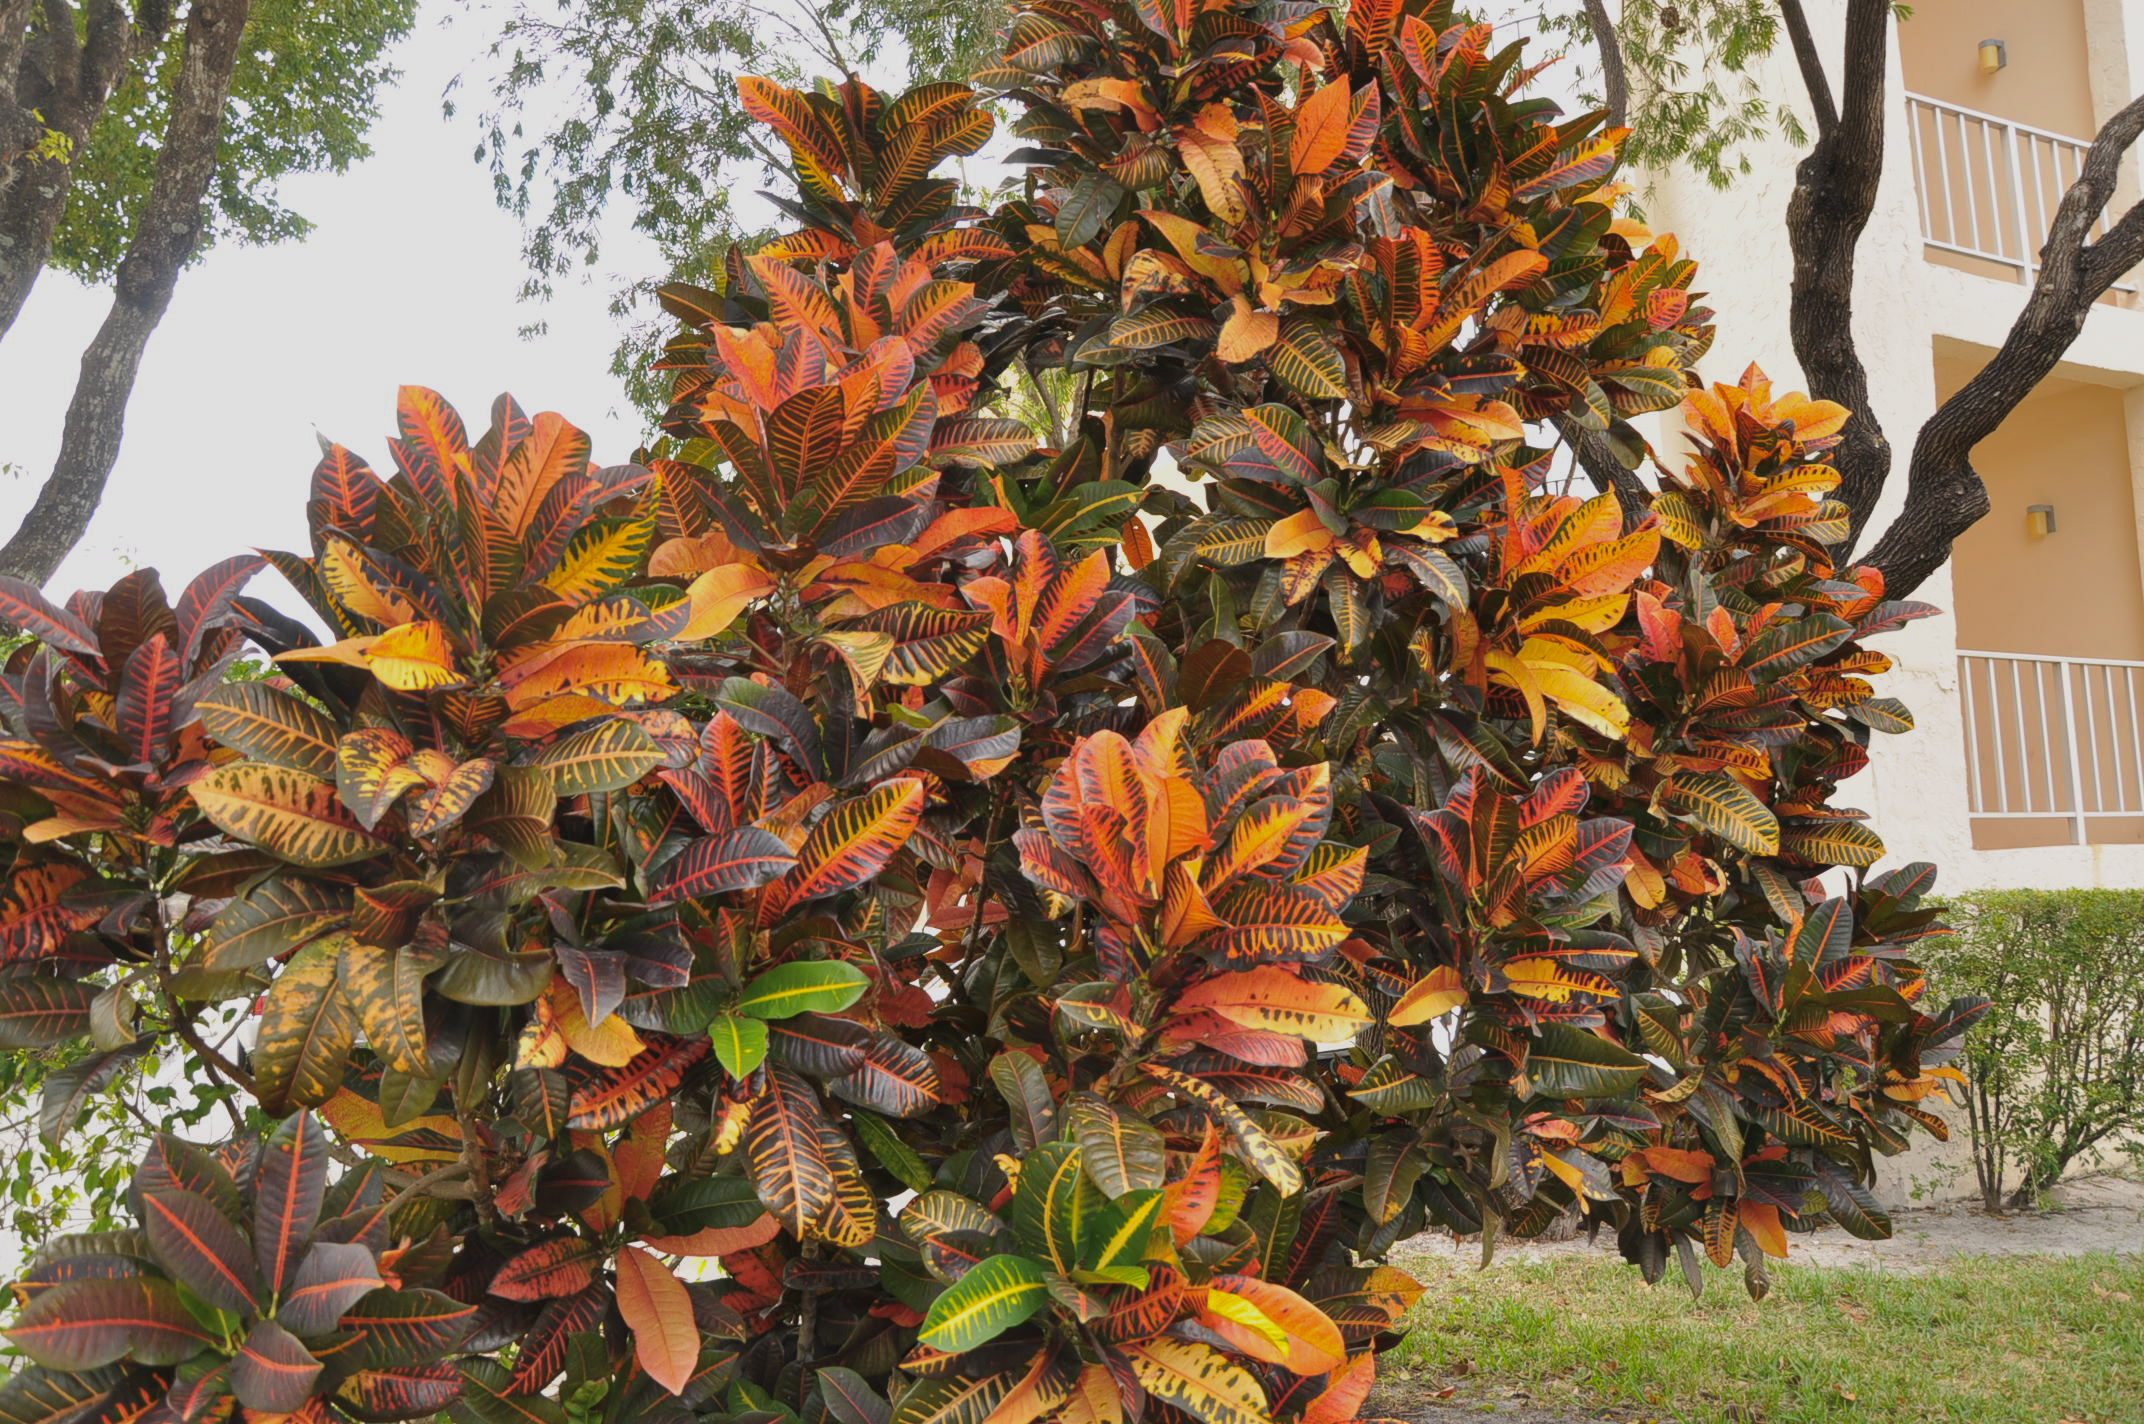 Bring on the Monster Croton - TROPICAL LOOKING PLANTS - Other Than